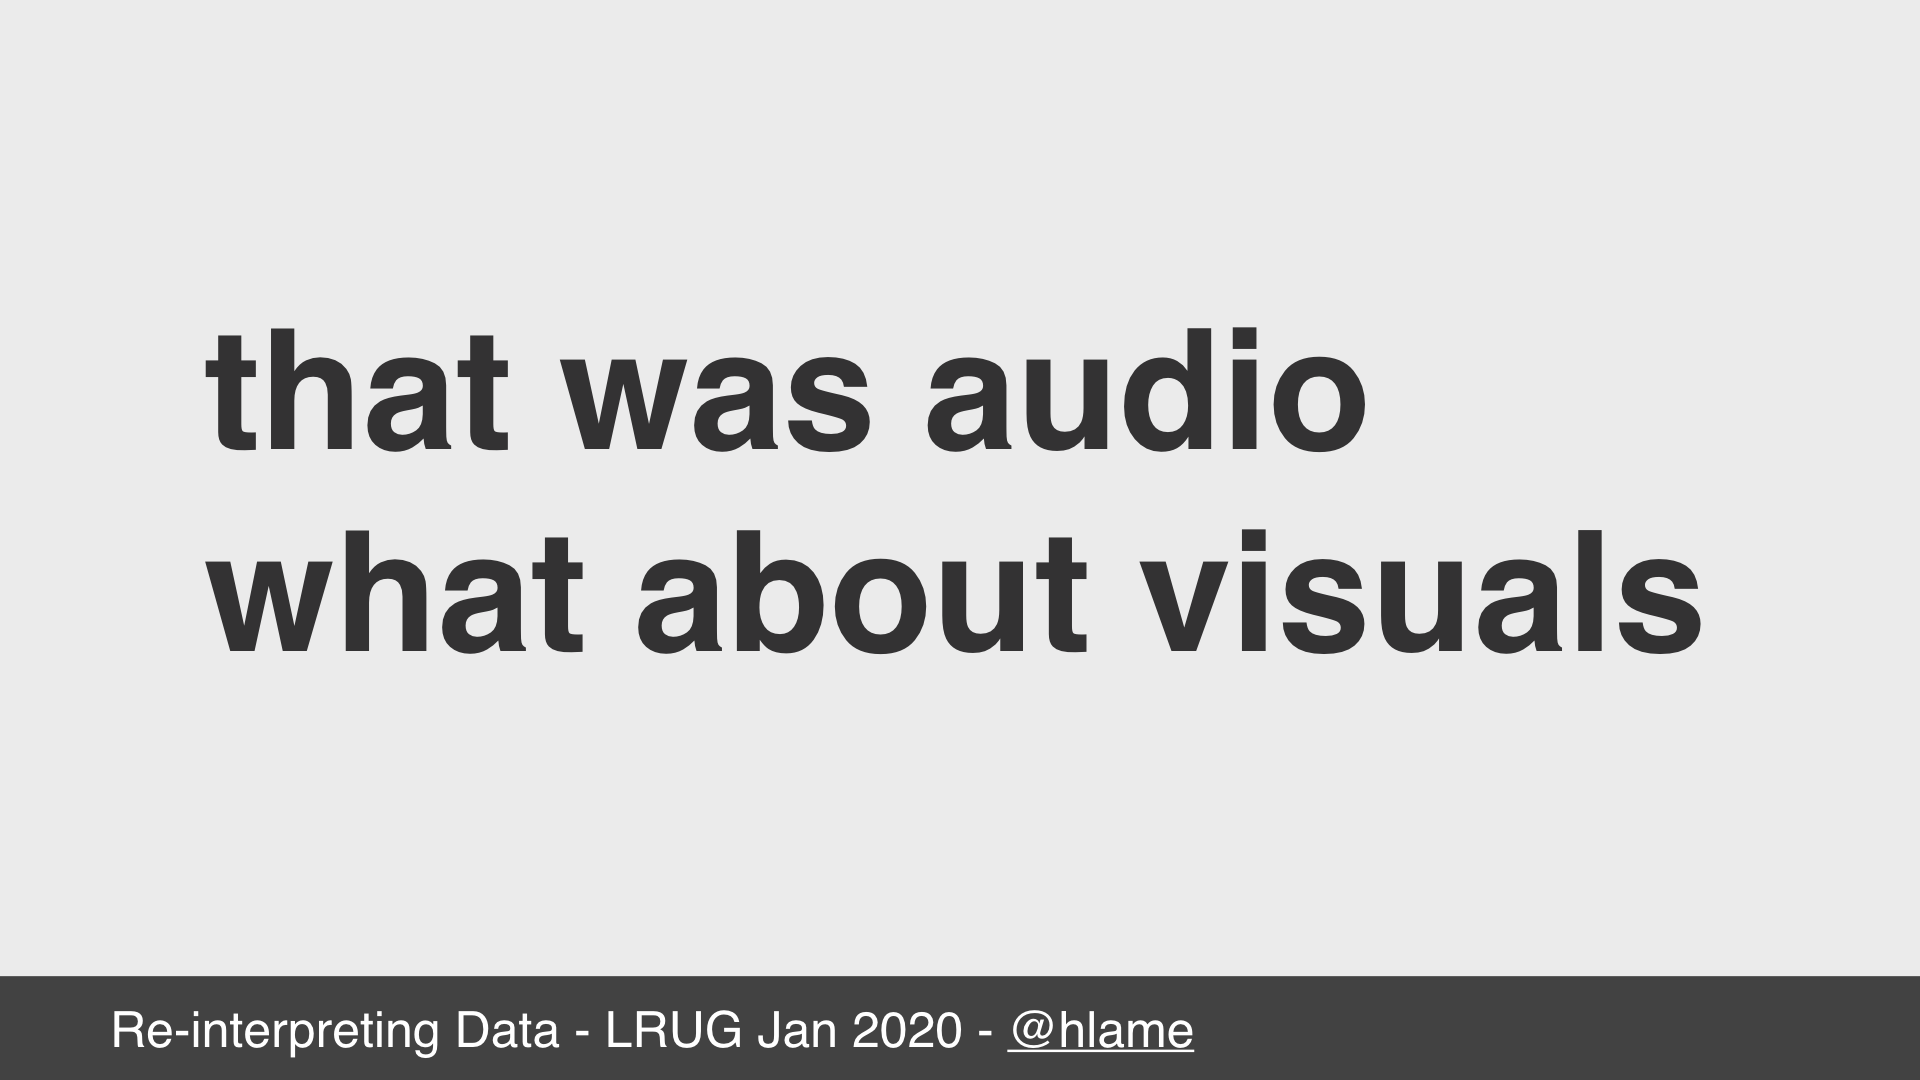 text: that was audio; what about visuals